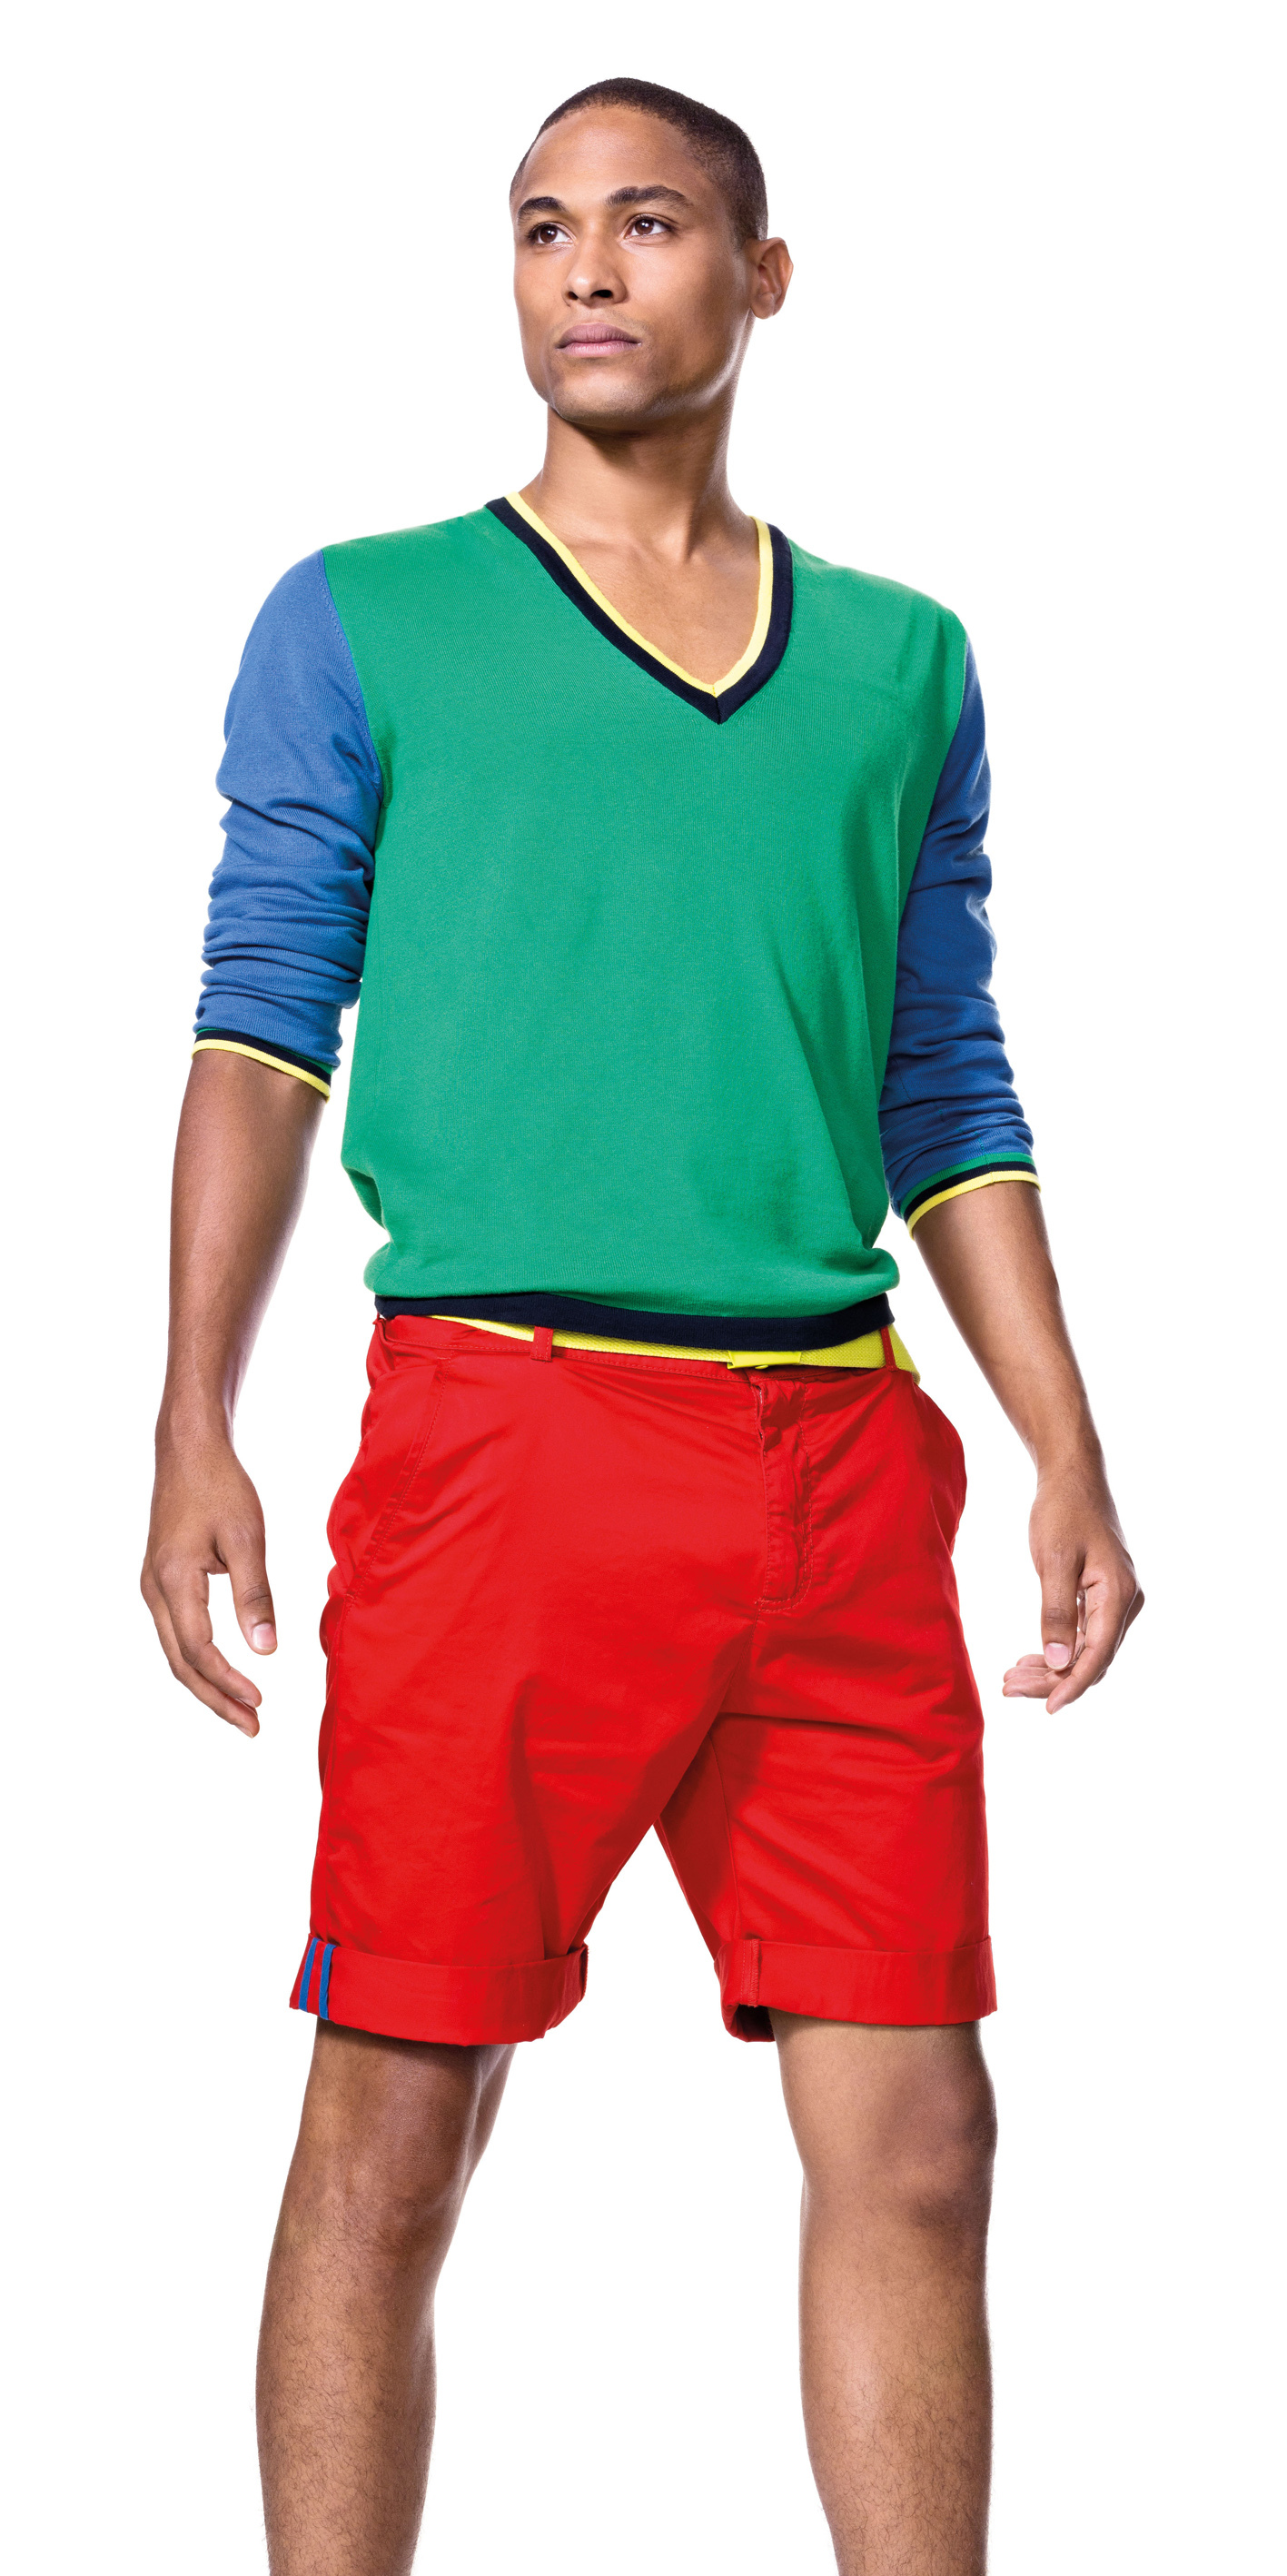 united colors of benetton A global brand, and one of the most well known in the world, united colors of benetton has an international style that combines color, quality and fashion.